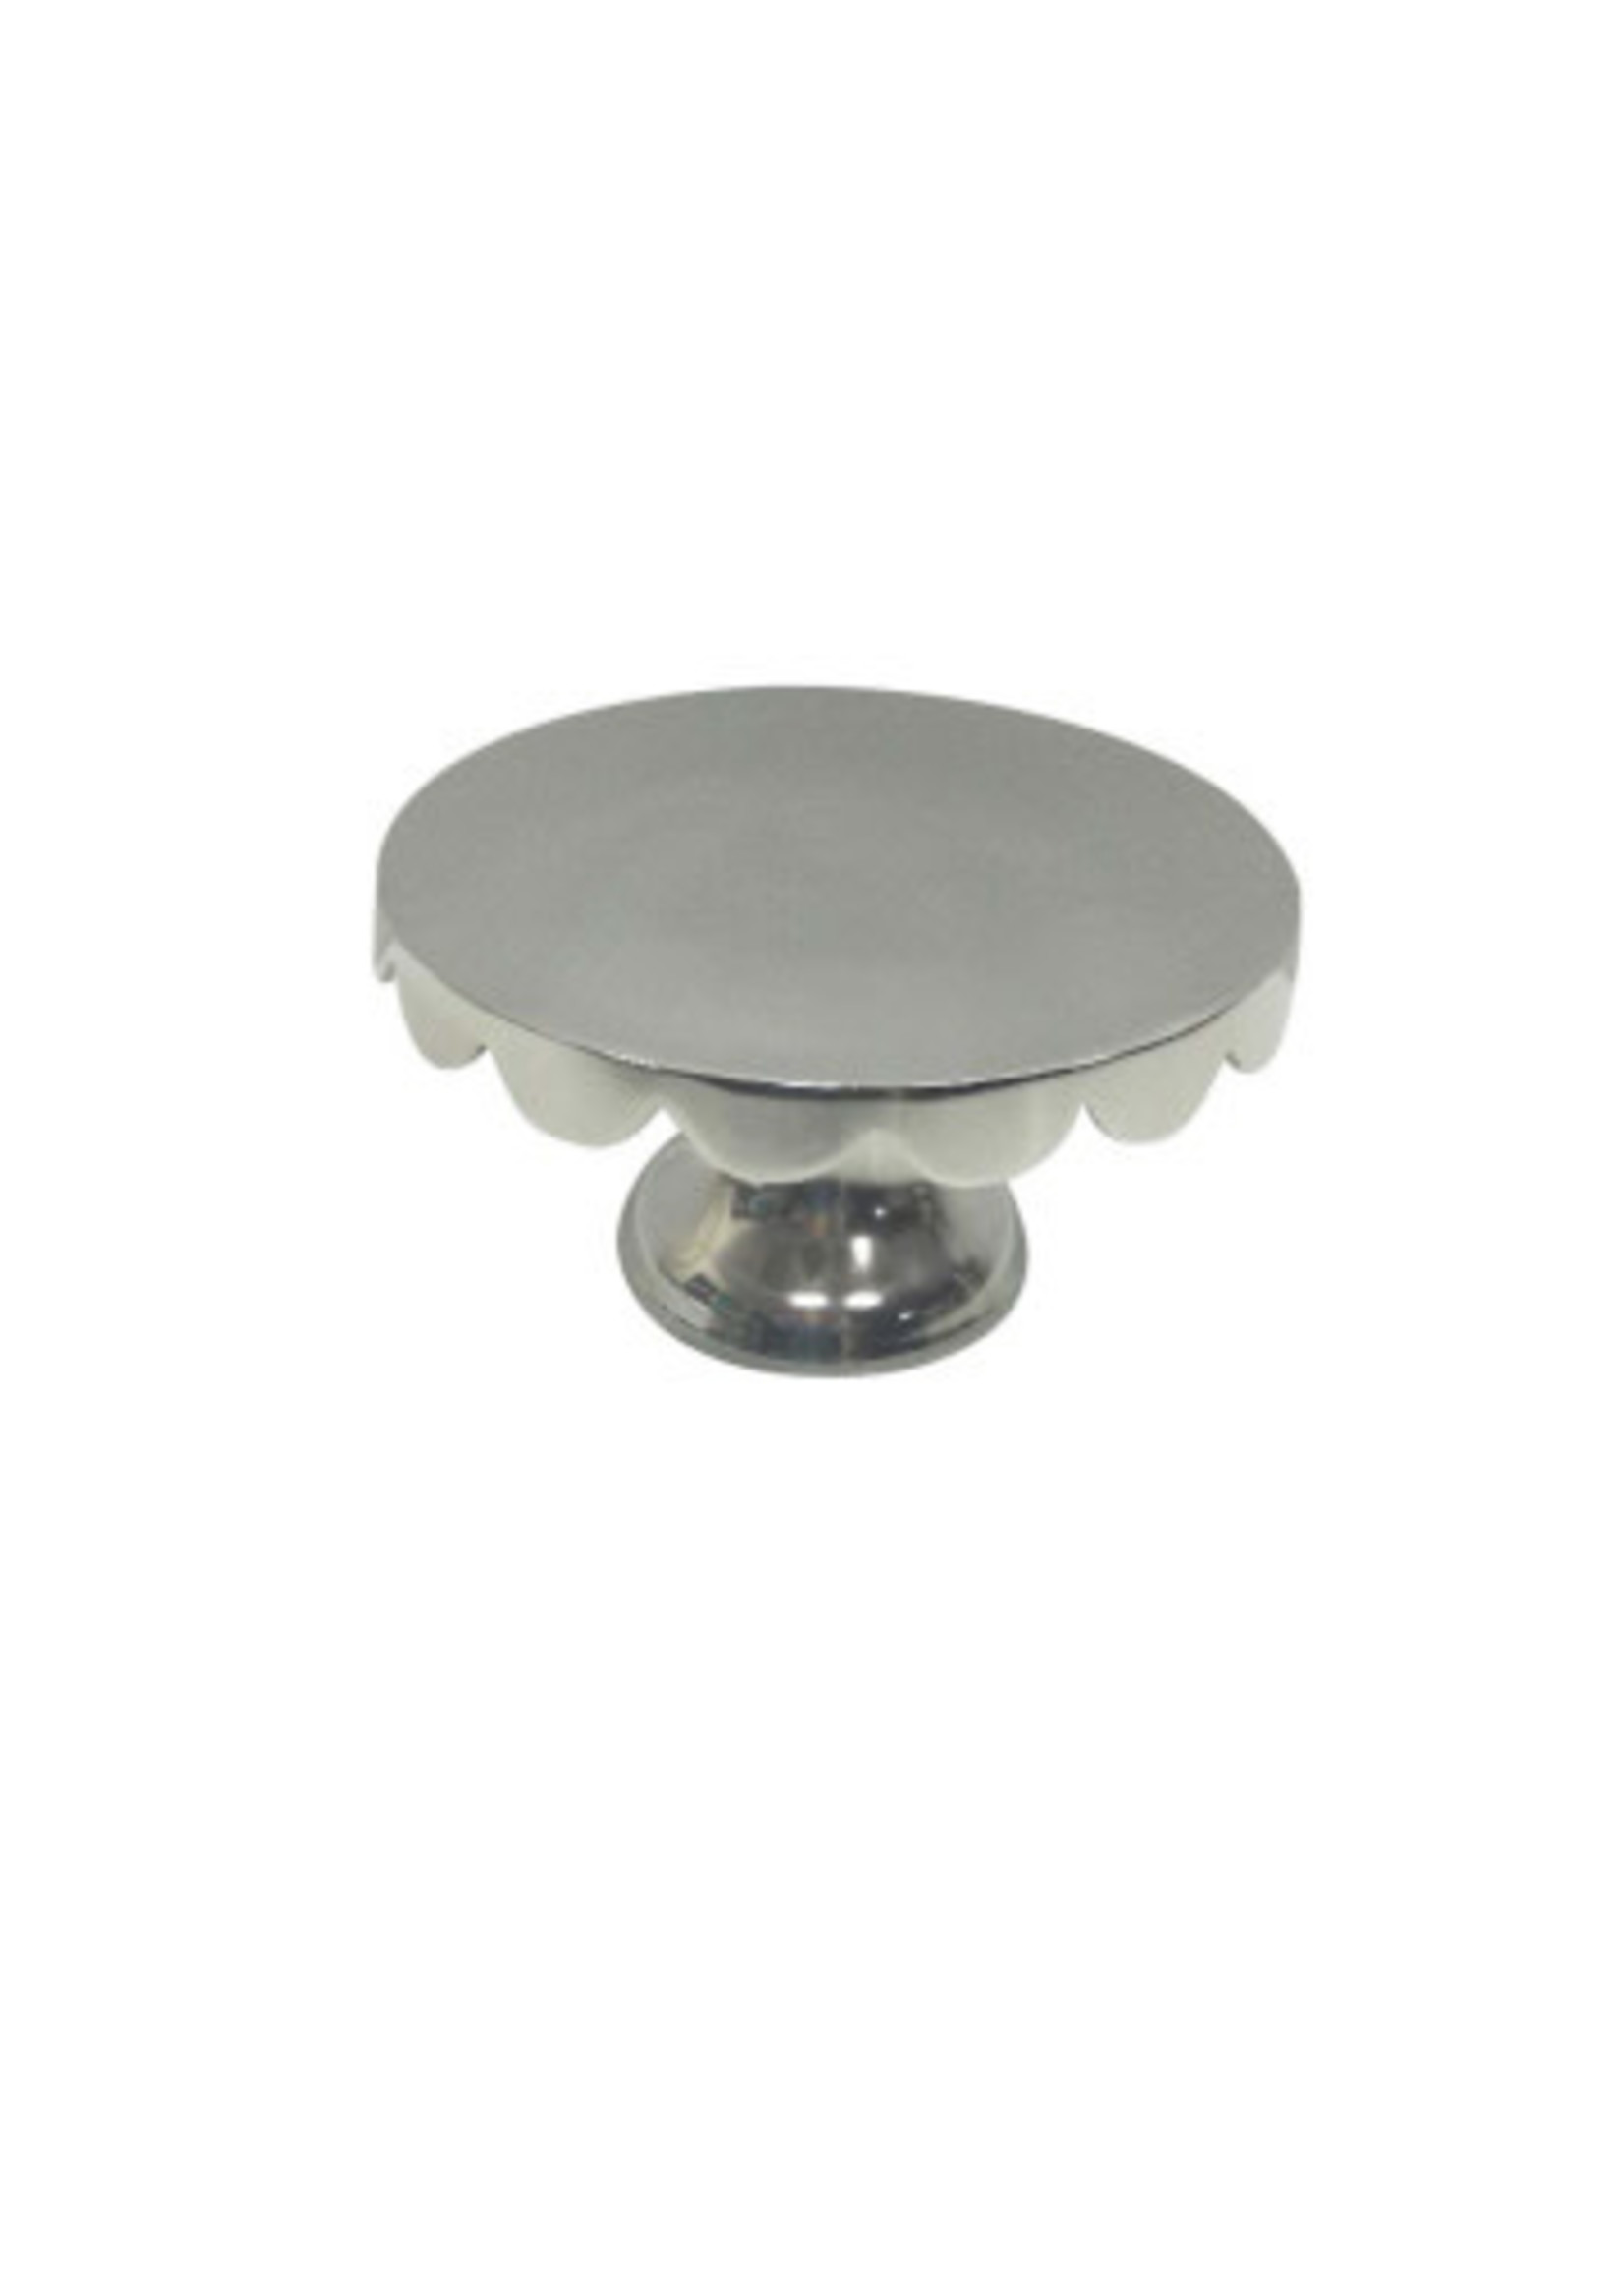 X-Small Polished Aluminum Cake Plate - Nickel